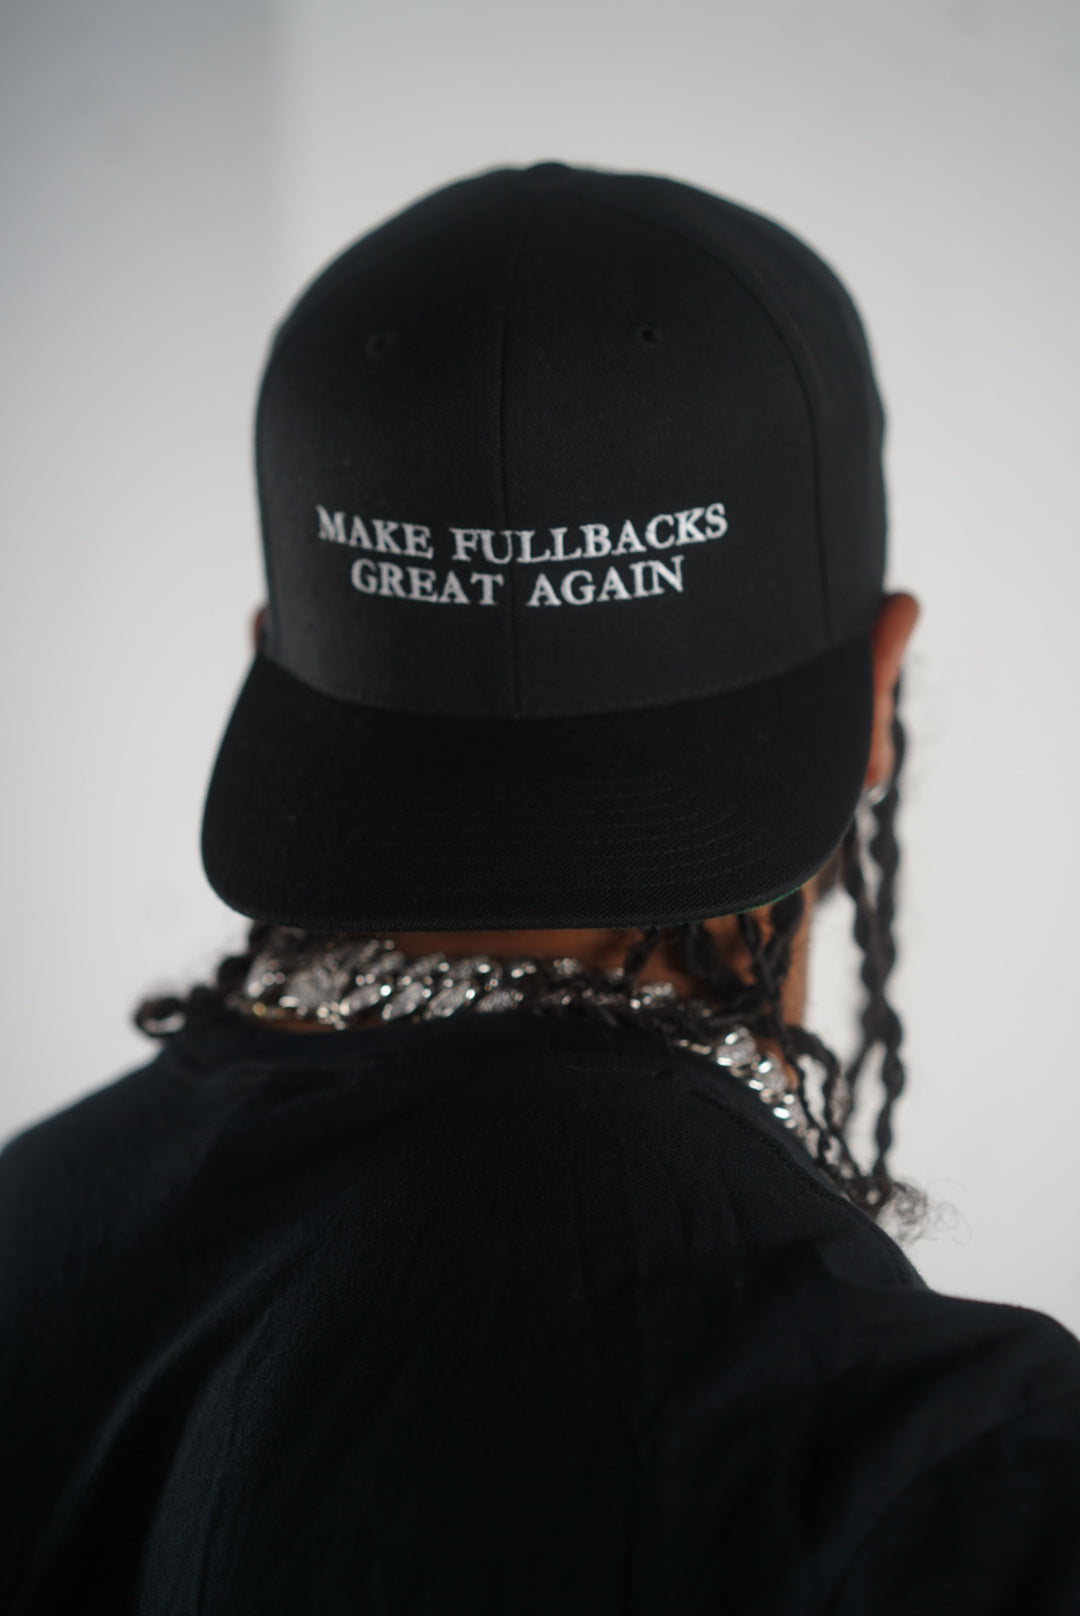 MFGA Black Snap Back-Make Fullbacks Great Again by Keith Smith